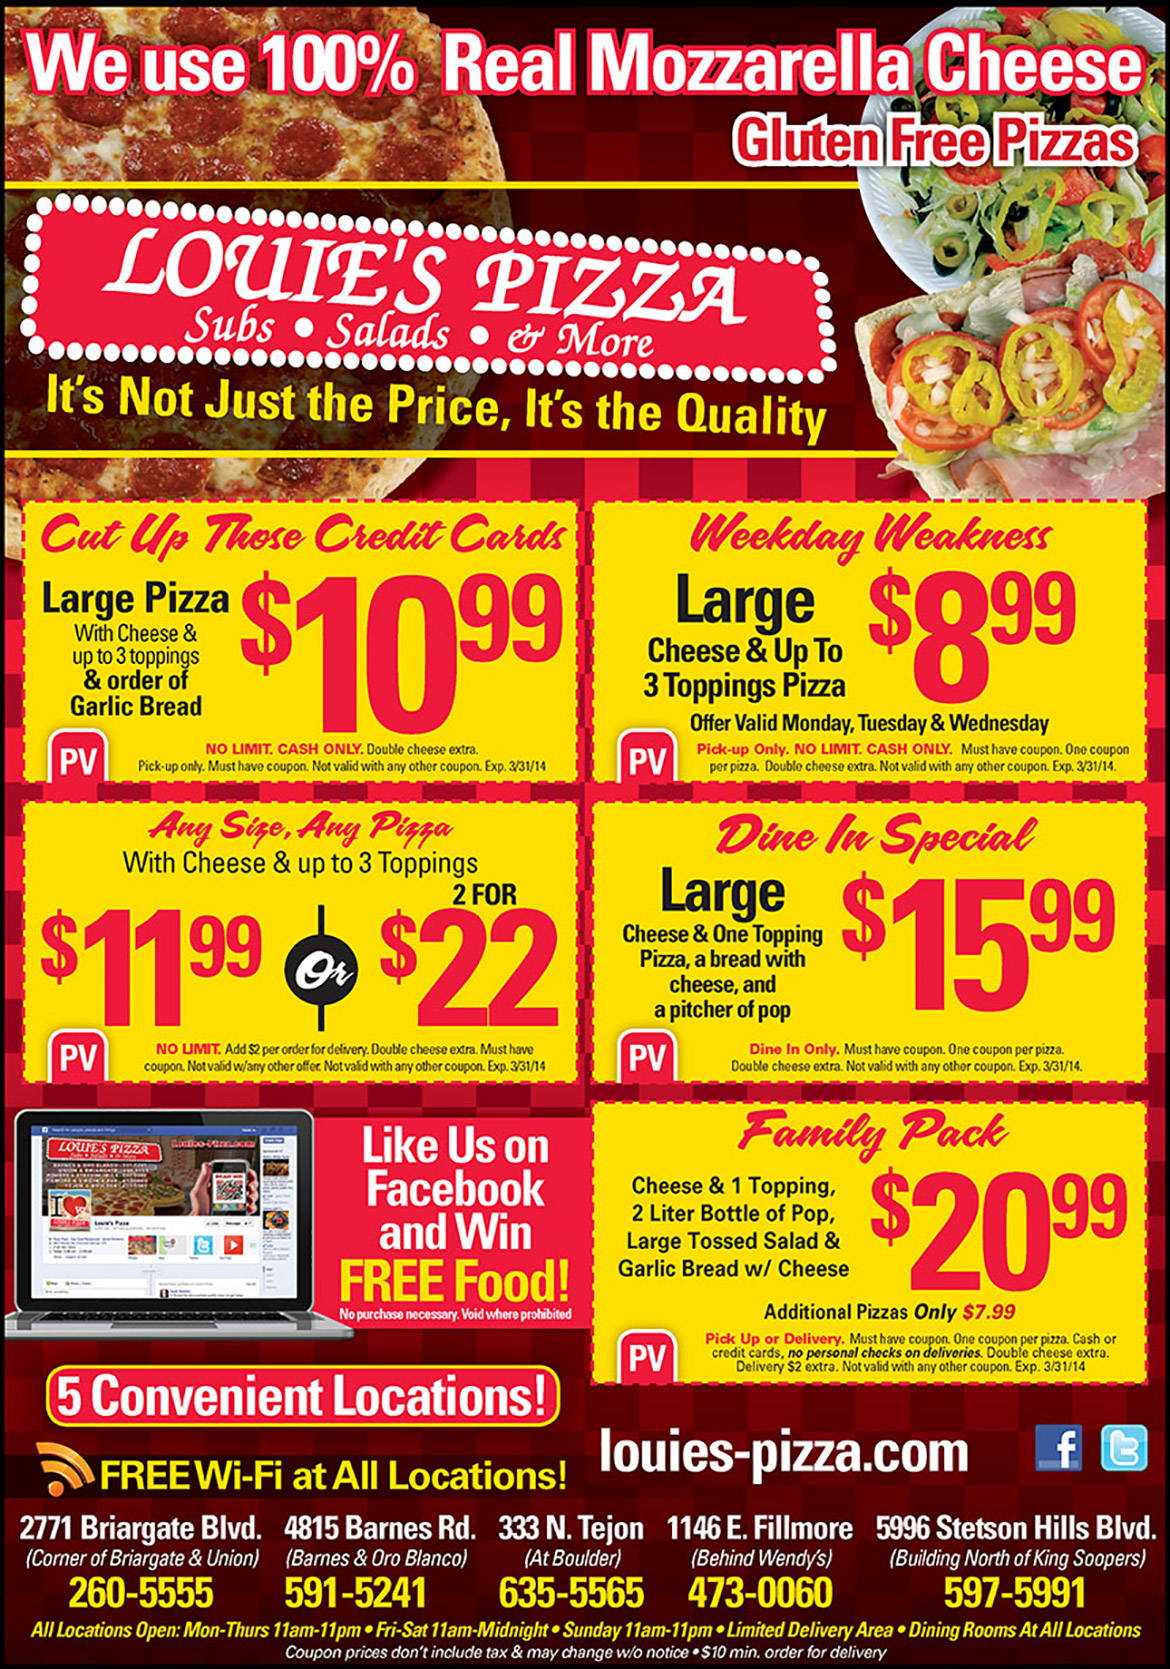 louies-pizza-coupons-2-2014-2